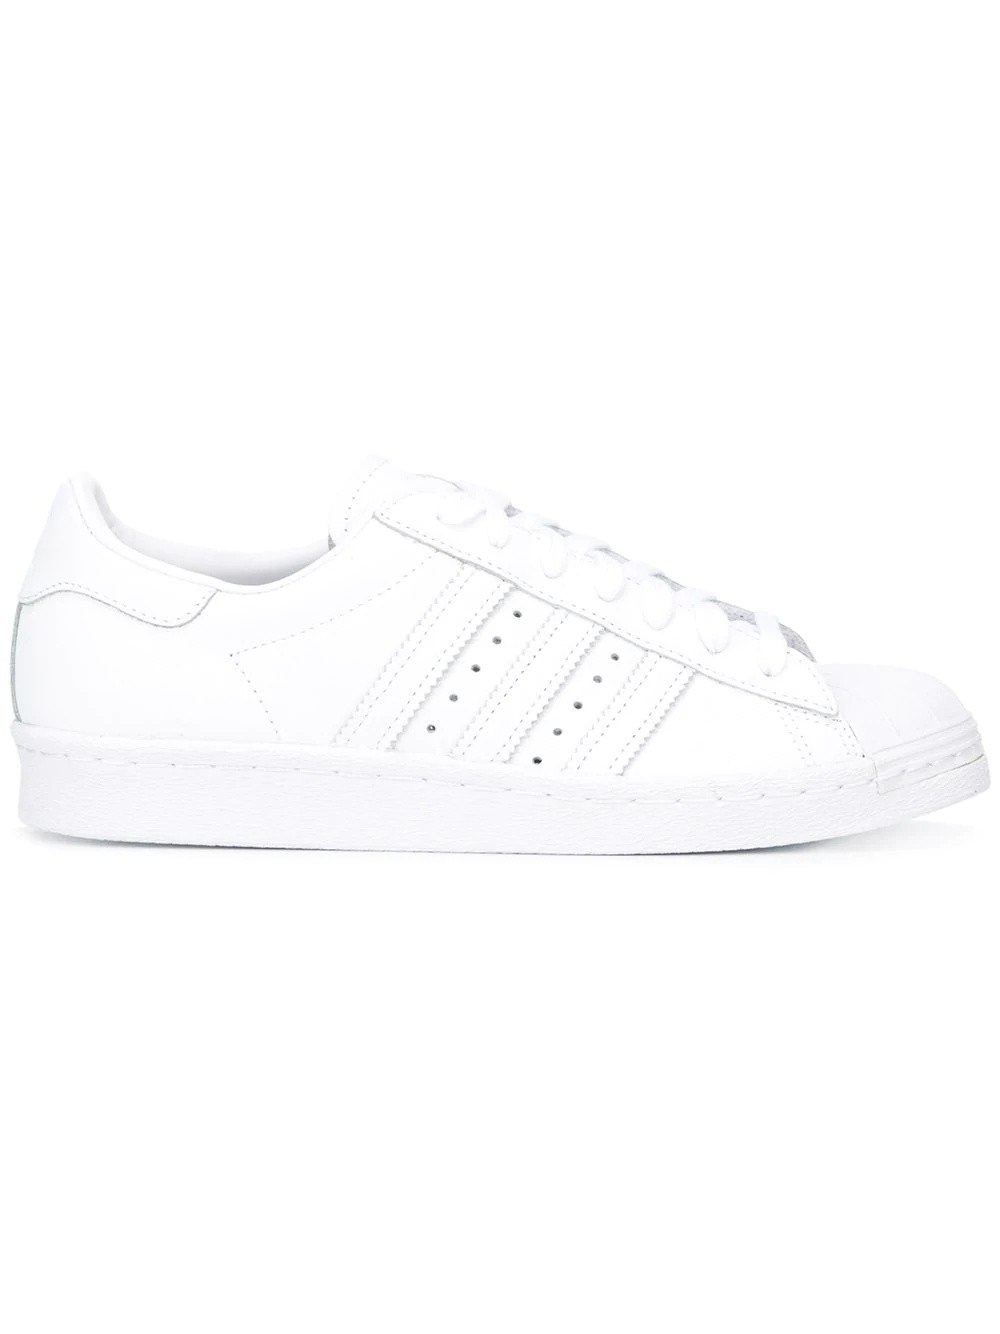 Adidas Originals Superstar 80s | Blancas | Sneakers | S79443